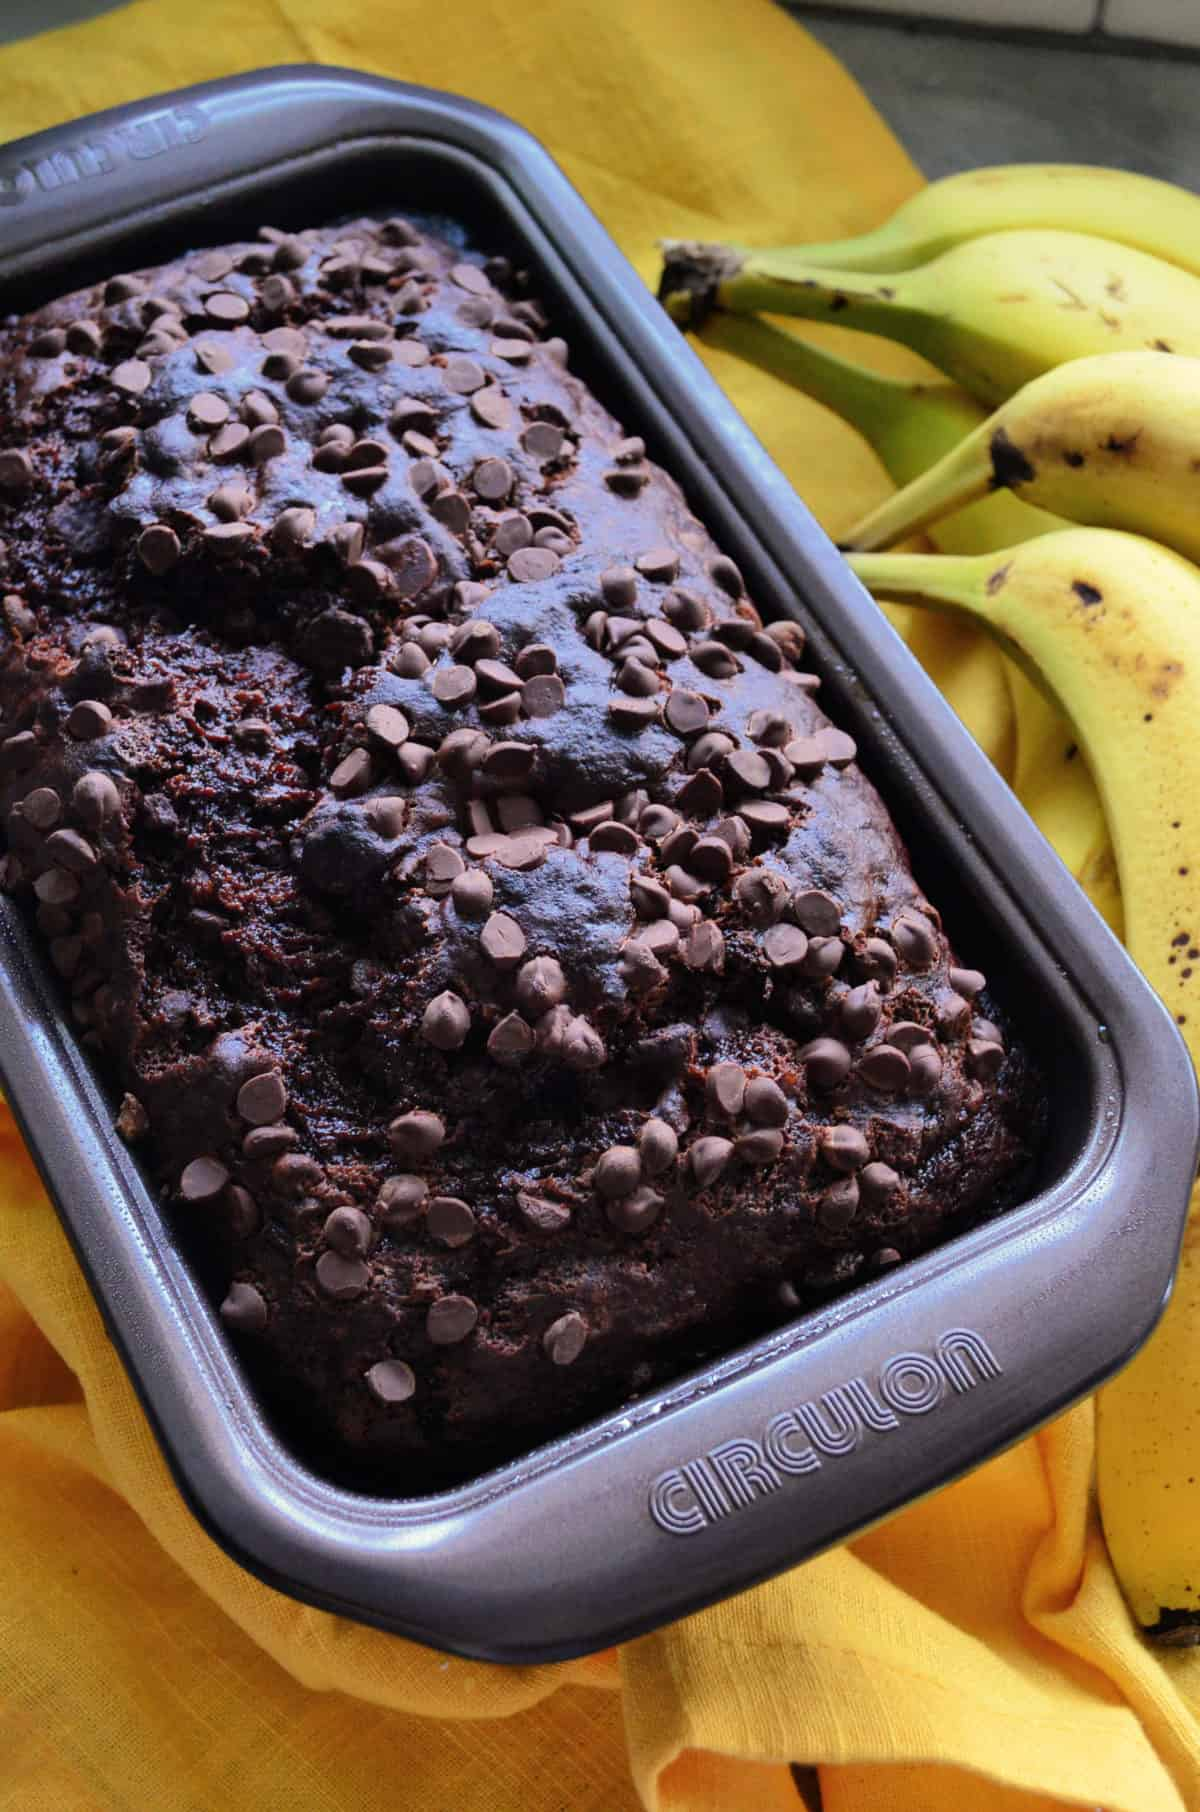 Top view of loaf of brown bread in pan with chocolate chips in it and bananas in background.